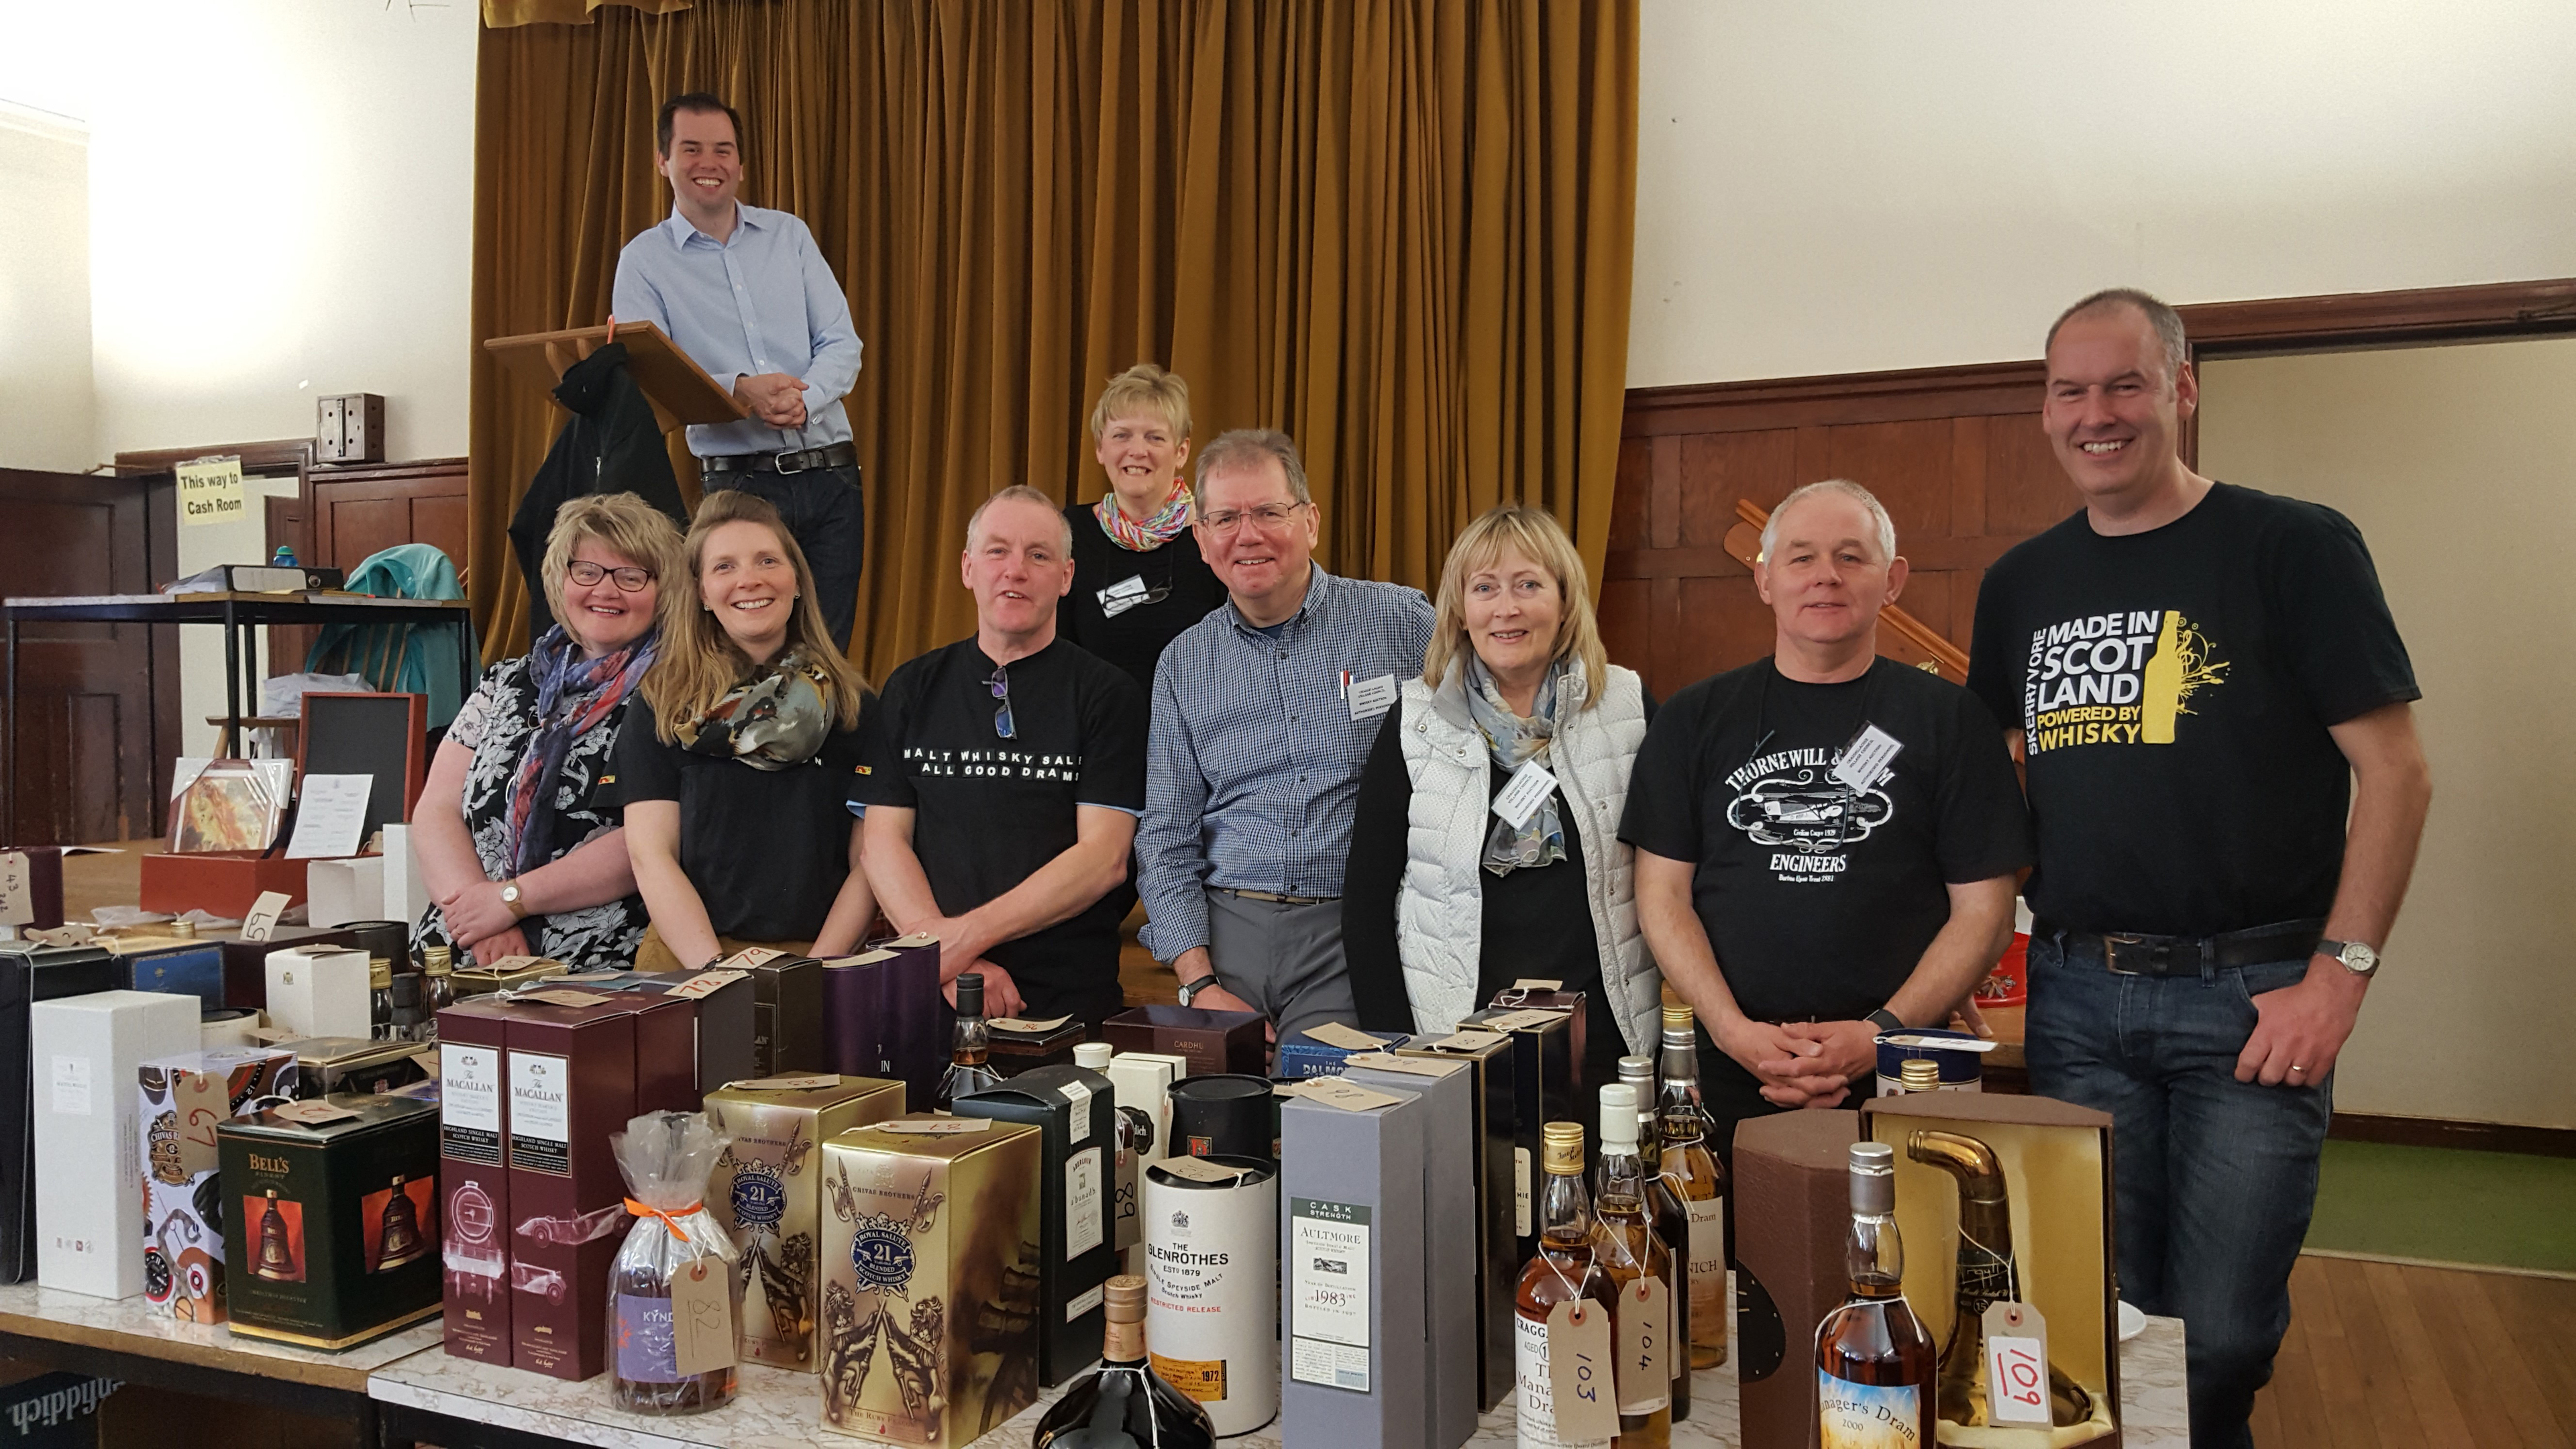 The 2017 auction team for the Craigellachie Whisky auction